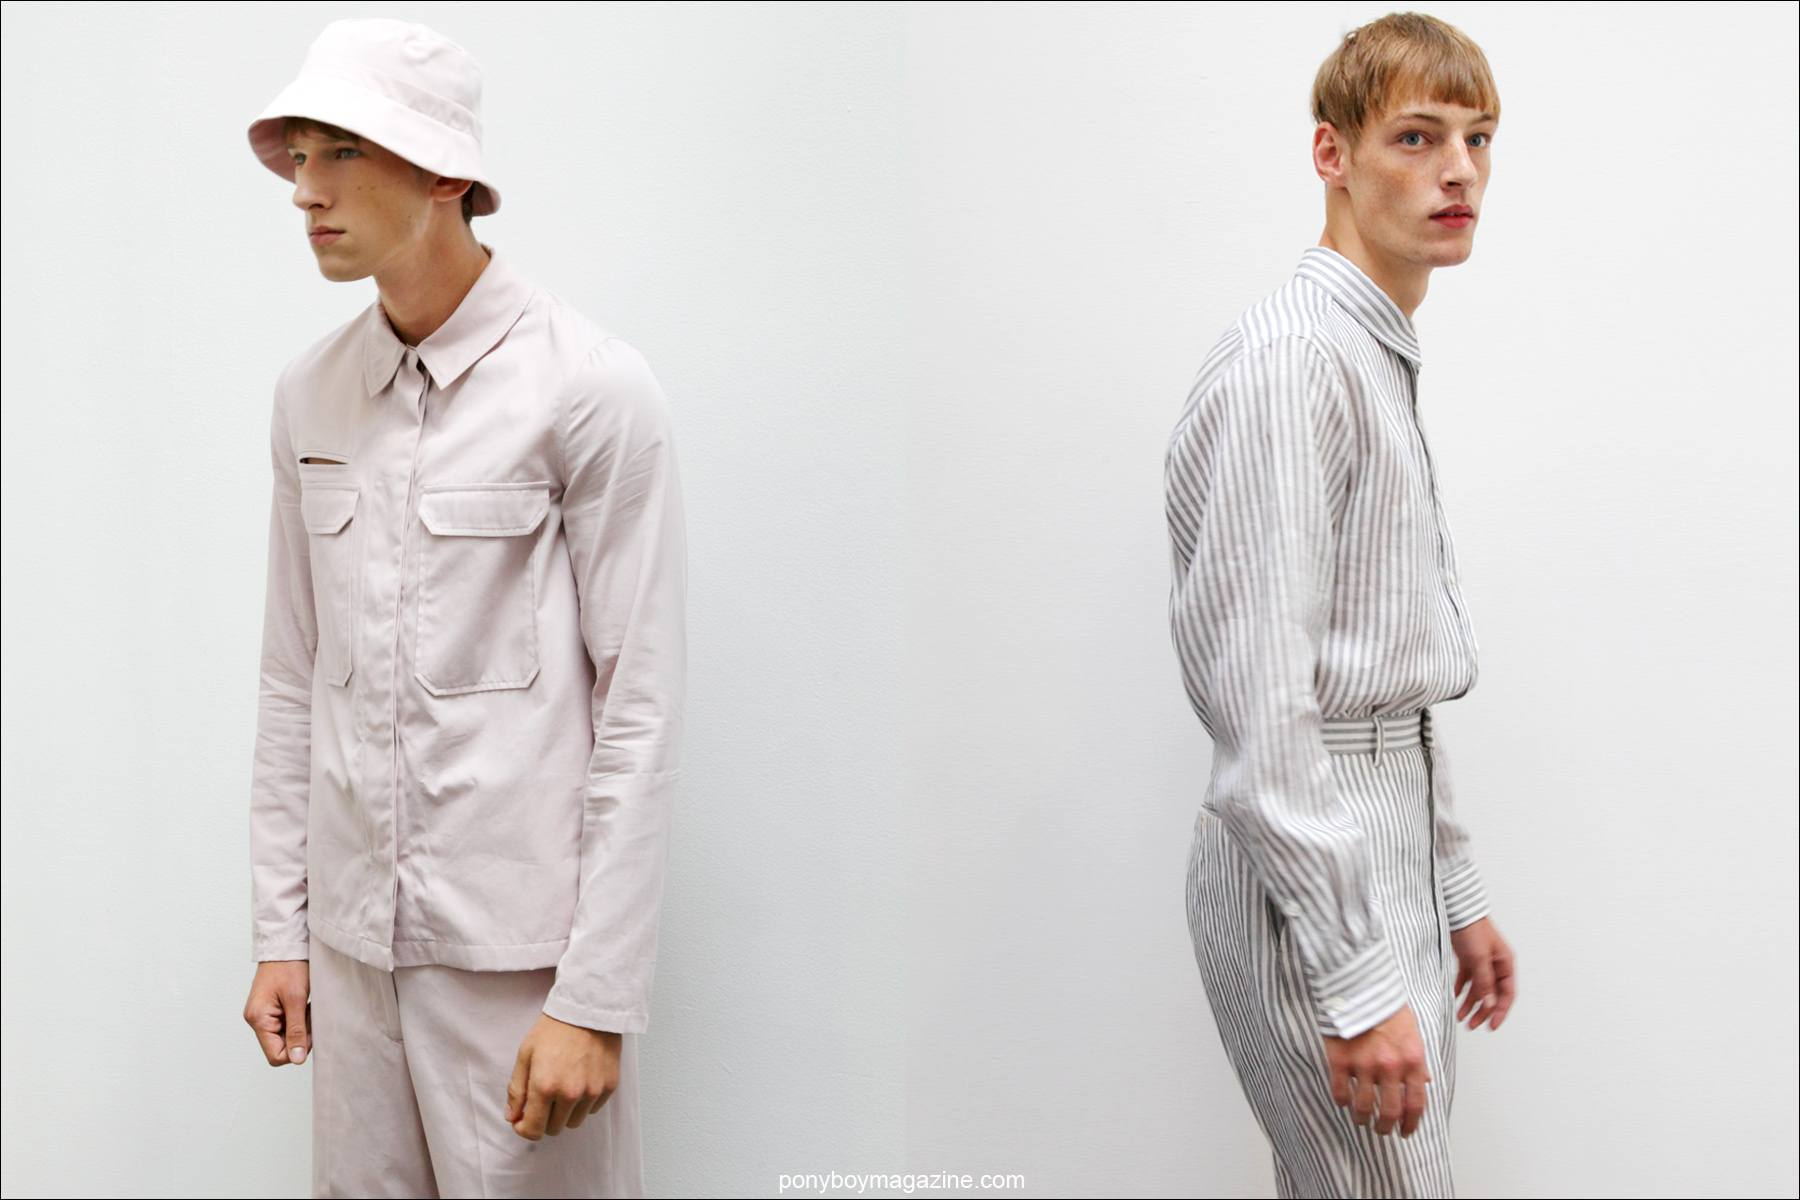 Models Botond Cseke and Roberto Sipos wearing the latest menswear designs from Duckie Brown, S/S15. Photos taken by Alexander Thompson for Ponyboy Magazine in New York City.